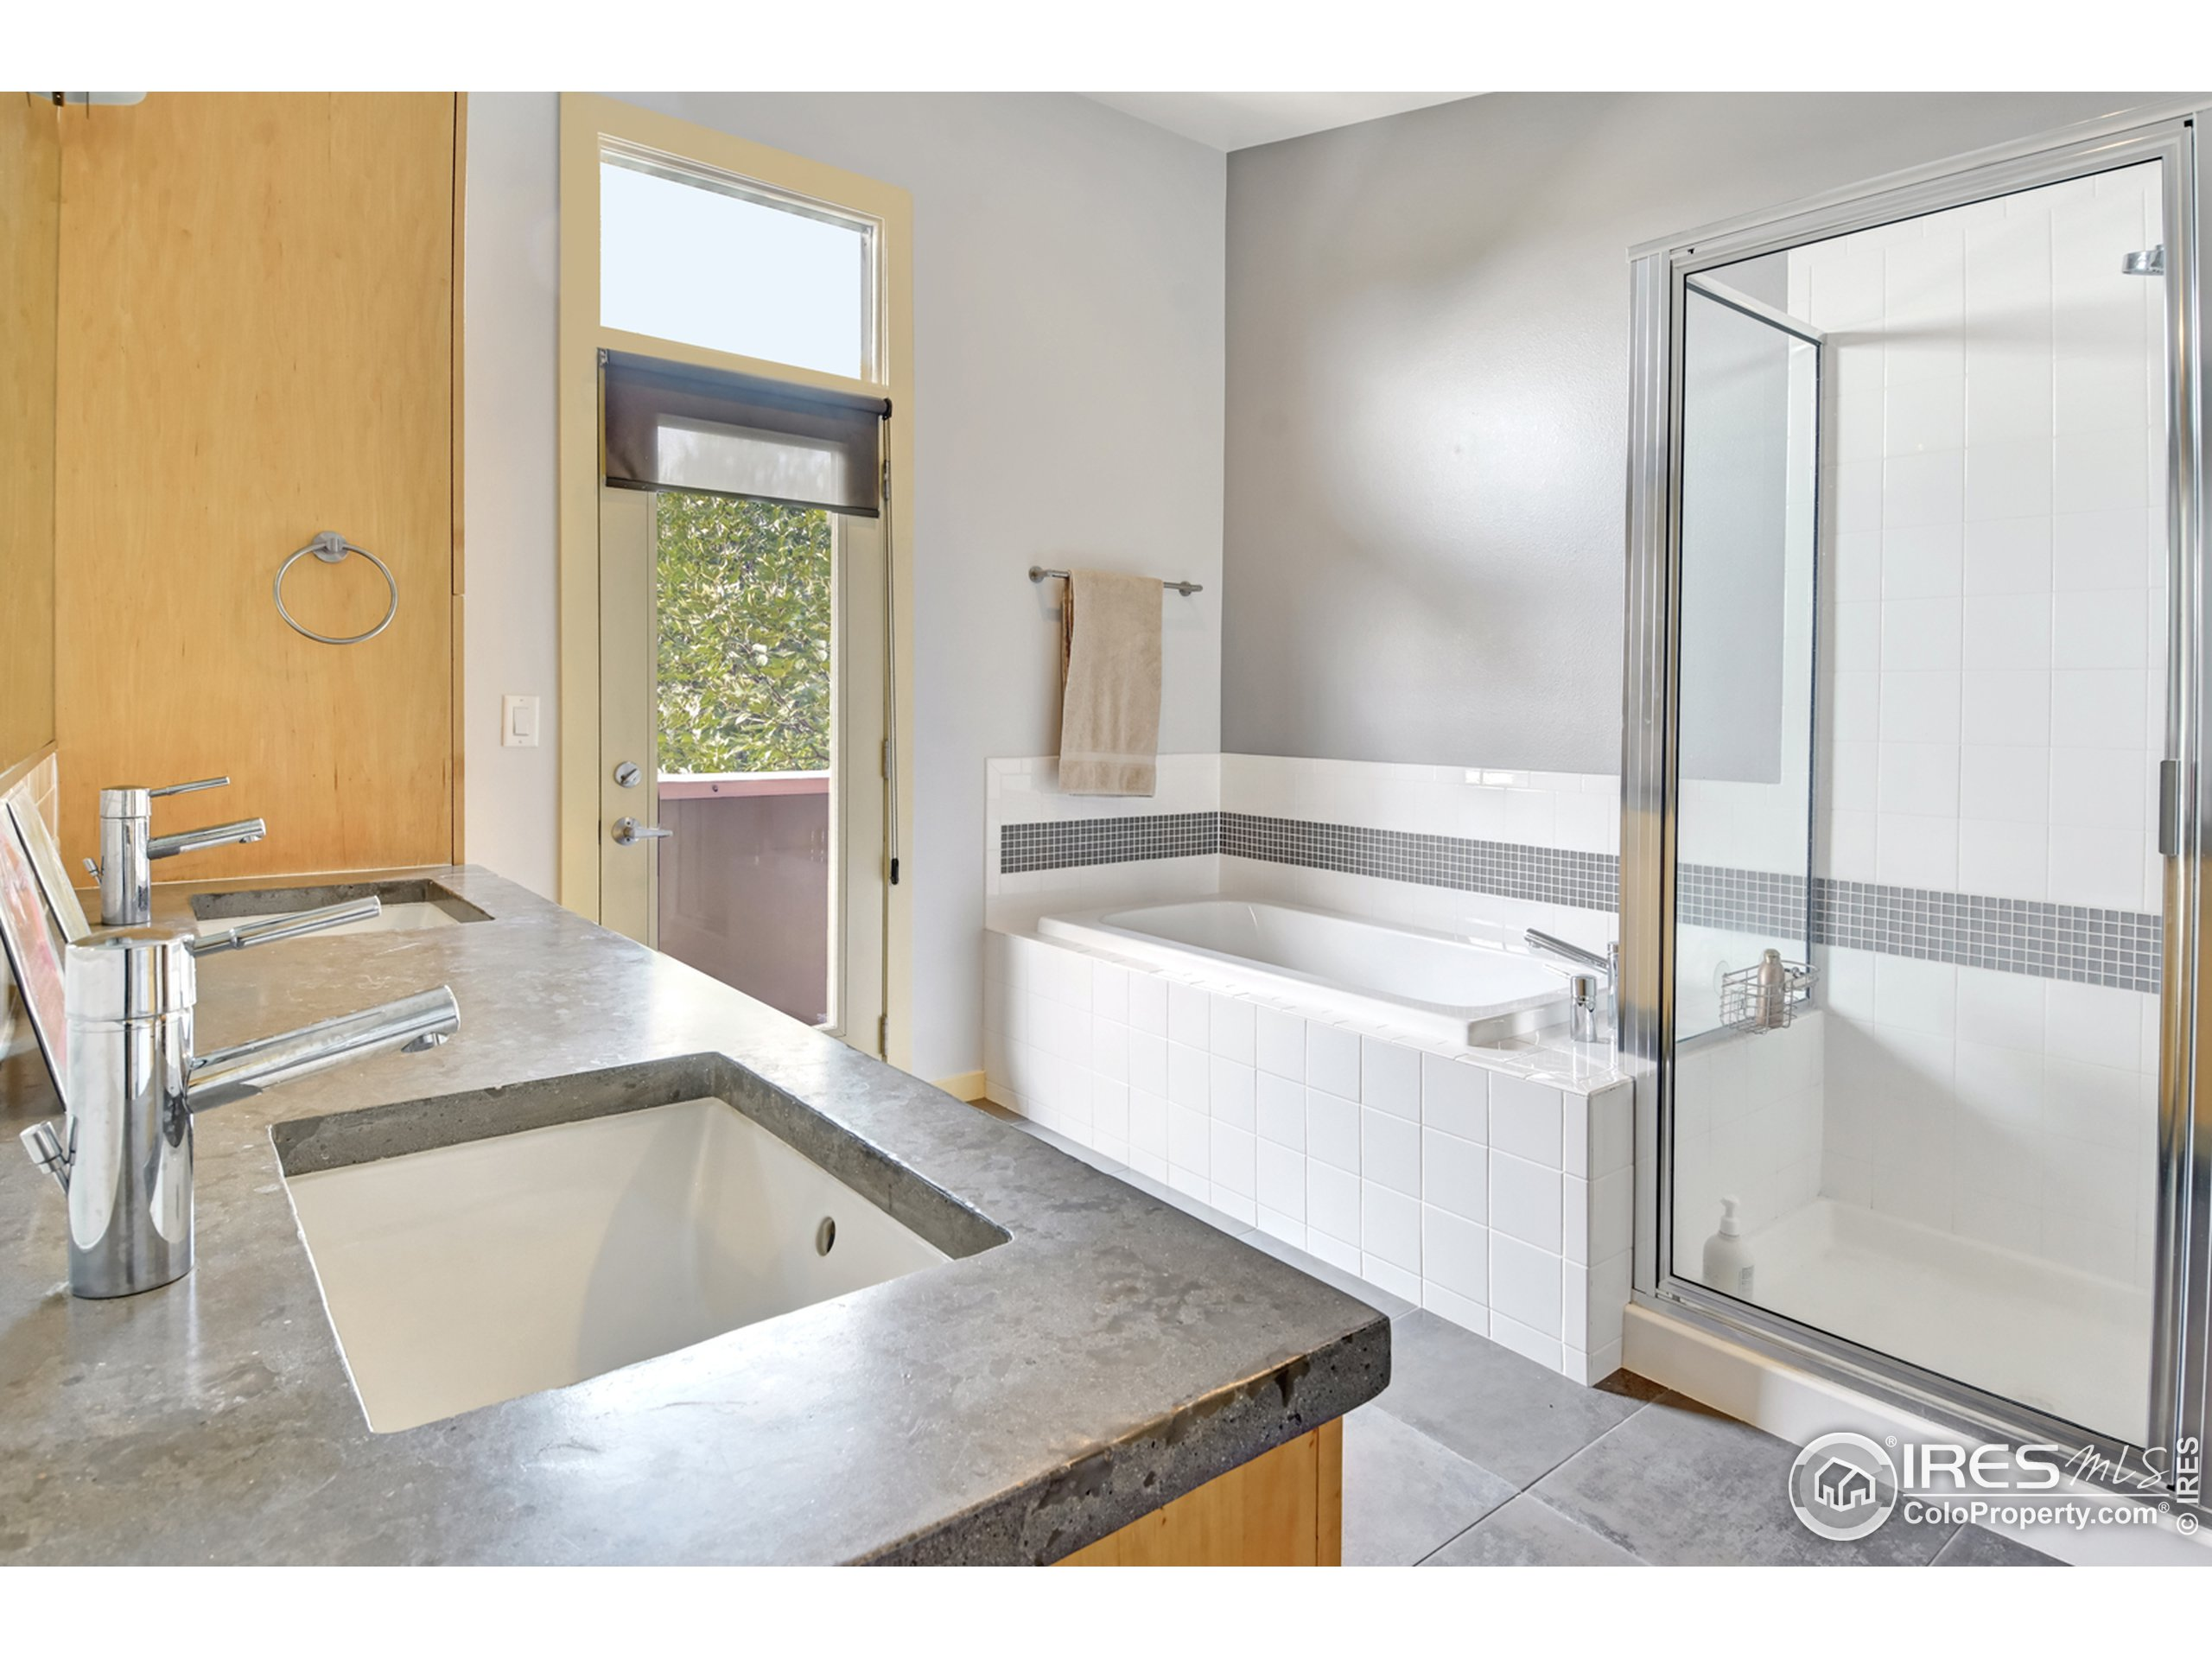 5 piece master bath with concrete counters